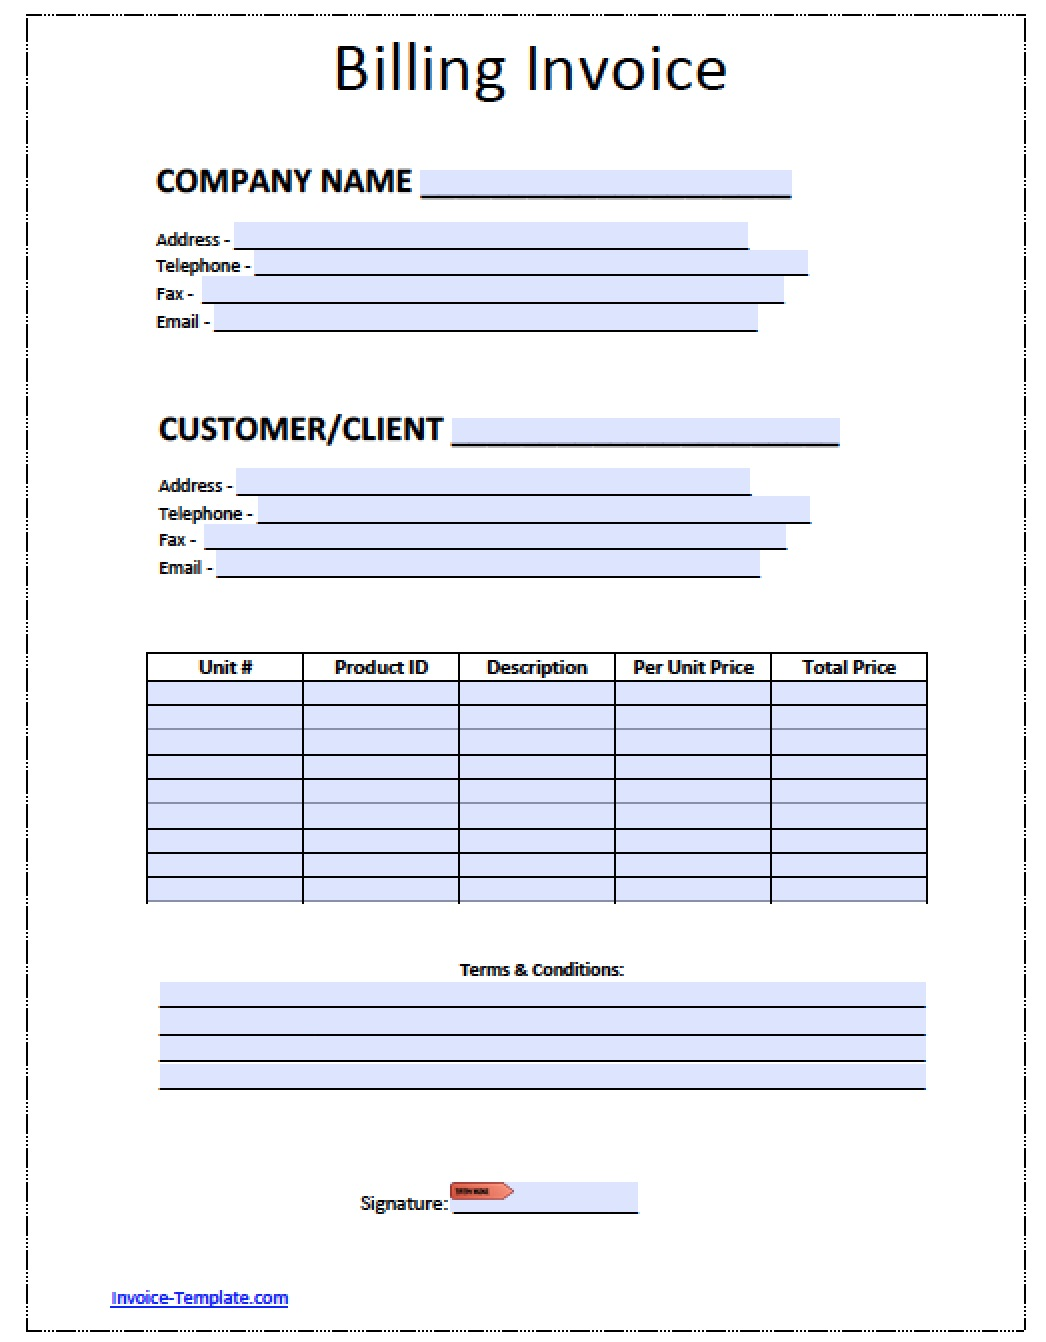 Aaaaeroincus  Pretty Billing Invoice Invoices Faq U Cloudflare Support Billing  With Magnificent Free Billing Invoice Template  Excel  Pdf  Word Doc  Billing With Delightful How Much Is Invoice Below Msrp Also Online Immigrant Visa Invoice Payment Center In Addition Invoice Google Doc Template And Pay Invoice With Credit Card As Well As Commercial Shipping Invoice Additionally Ups Commercial Invoice Form From Happytomco With Aaaaeroincus  Magnificent Billing Invoice Invoices Faq U Cloudflare Support Billing  With Delightful Free Billing Invoice Template  Excel  Pdf  Word Doc  Billing And Pretty How Much Is Invoice Below Msrp Also Online Immigrant Visa Invoice Payment Center In Addition Invoice Google Doc Template From Happytomco